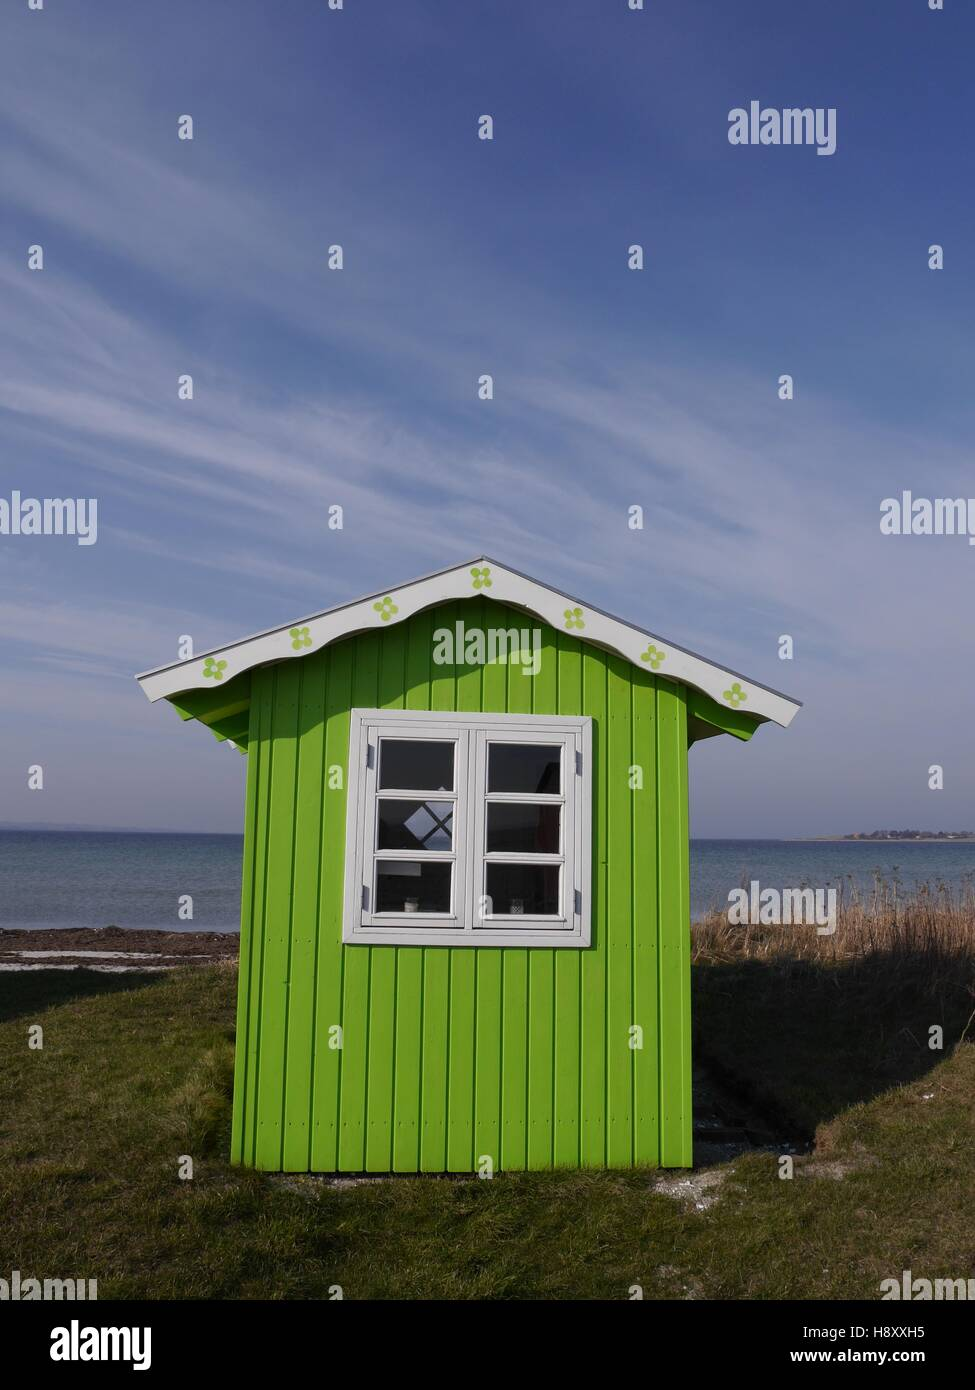 A cute lime-green beach hut with white roof and window frame against a background of blue sea and blue sky. - Stock Image